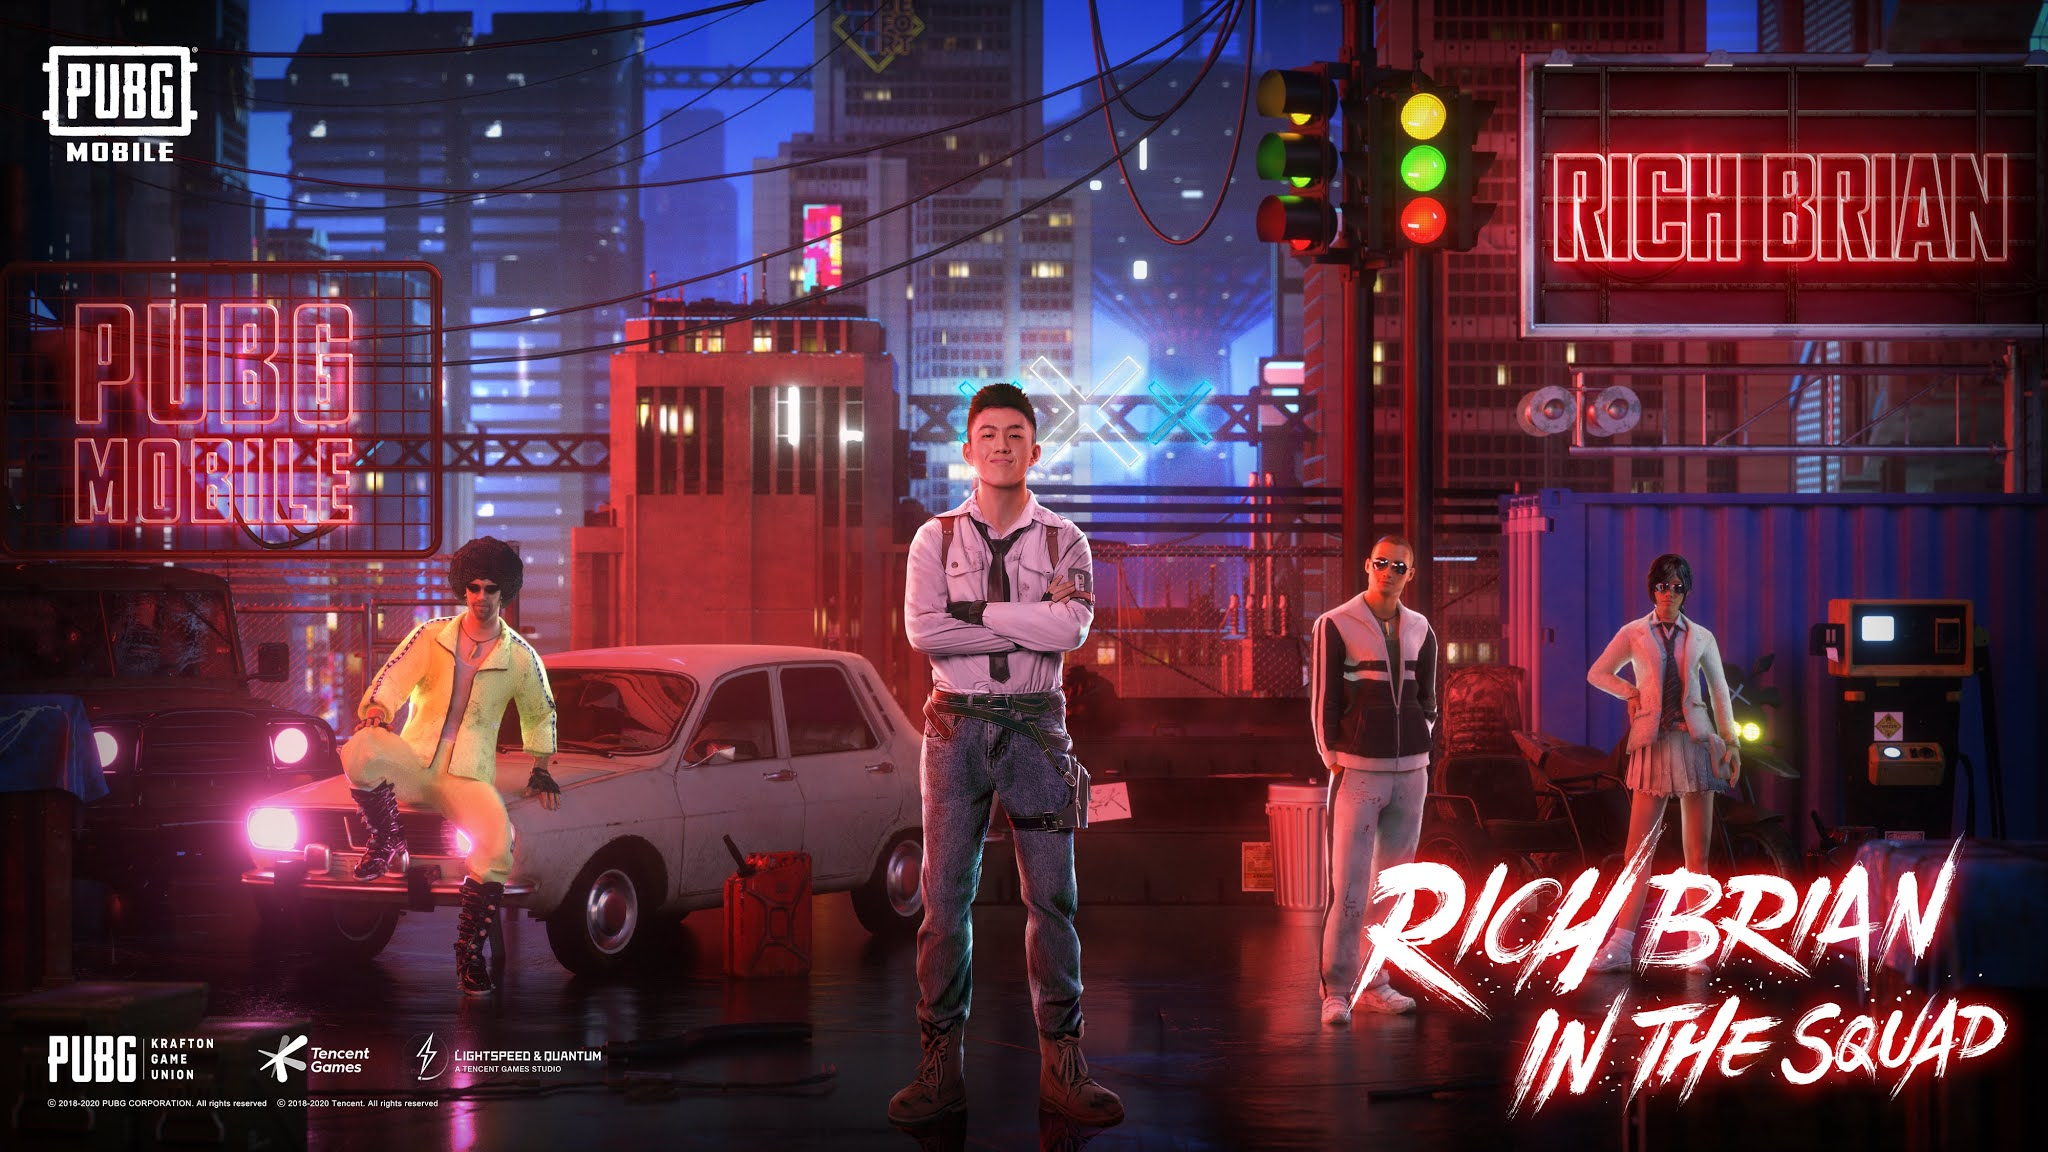 PUBG MOBILE Announce an Exclusive Collaboration with Rich Brian